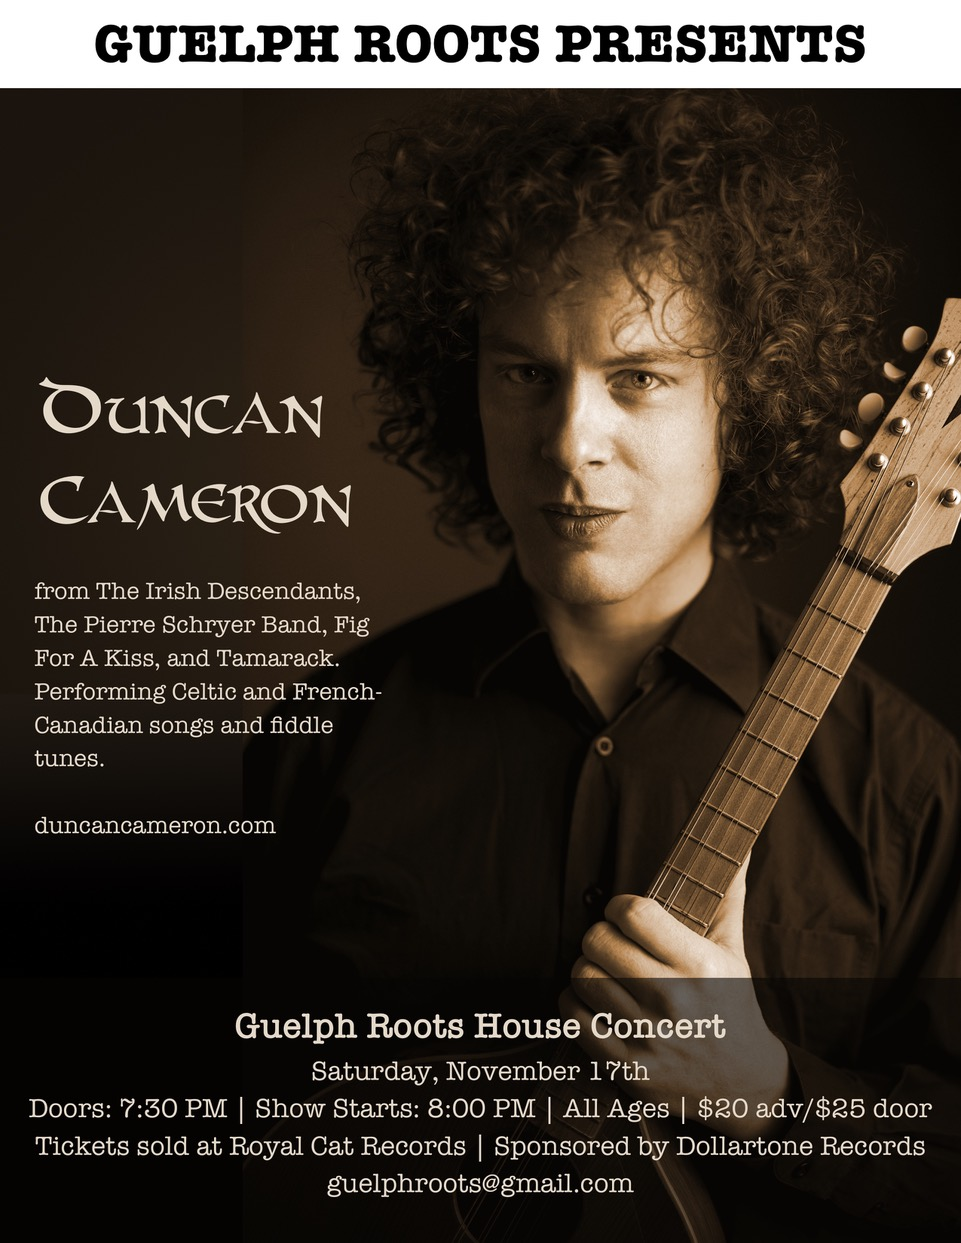 Duncan Cameron, a Guelph Roots presents,